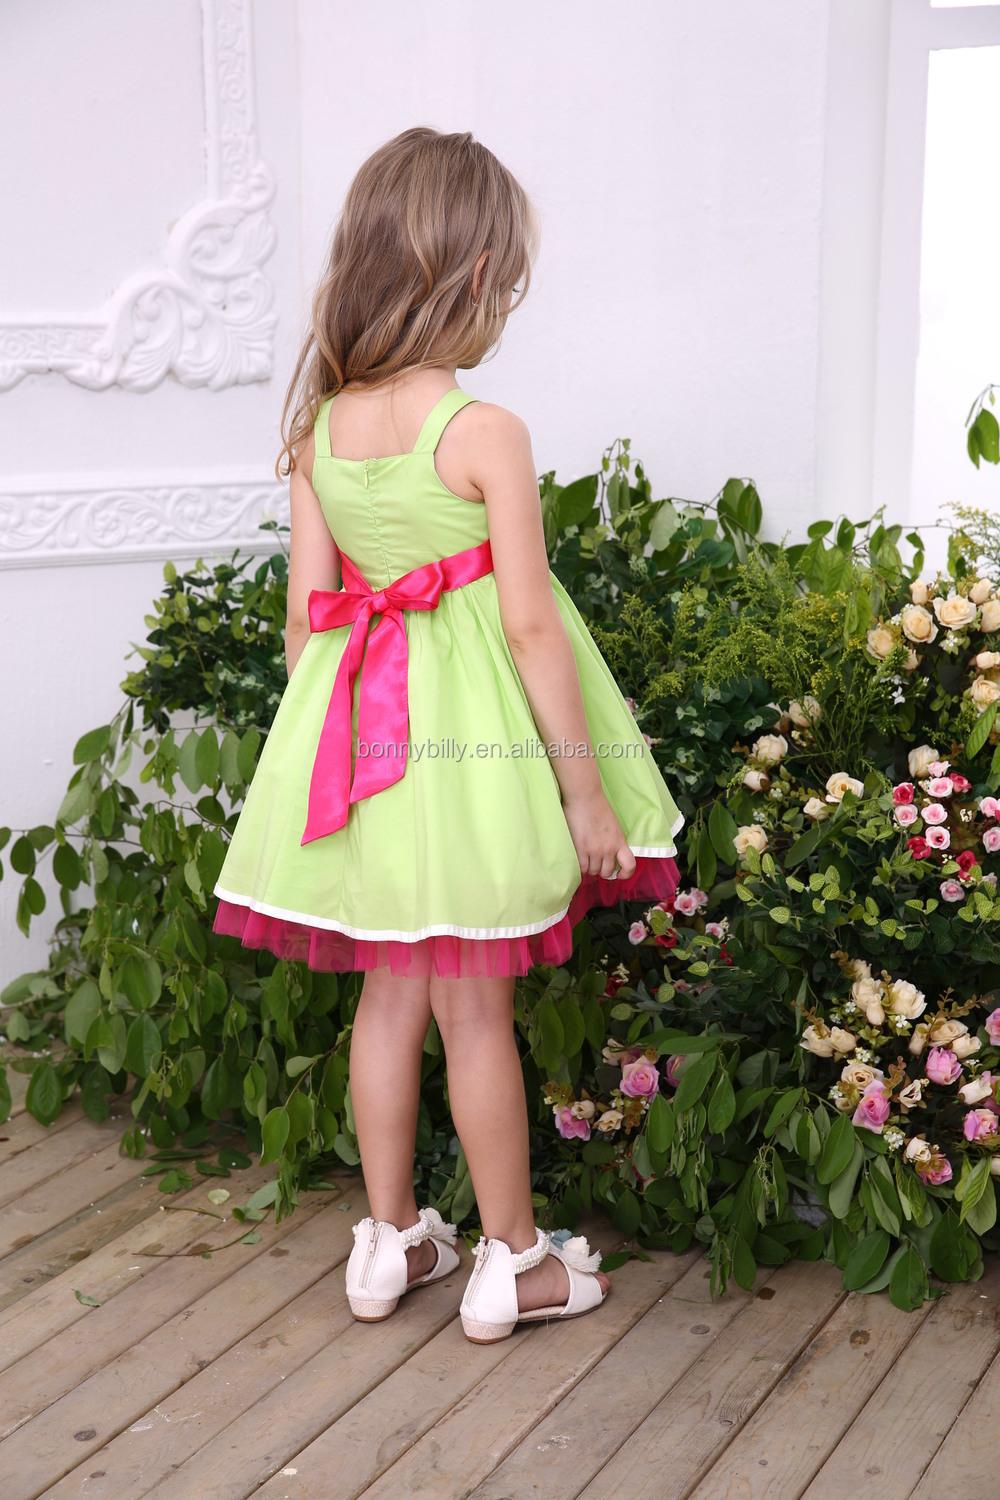 Kids Clothes Shopping Online